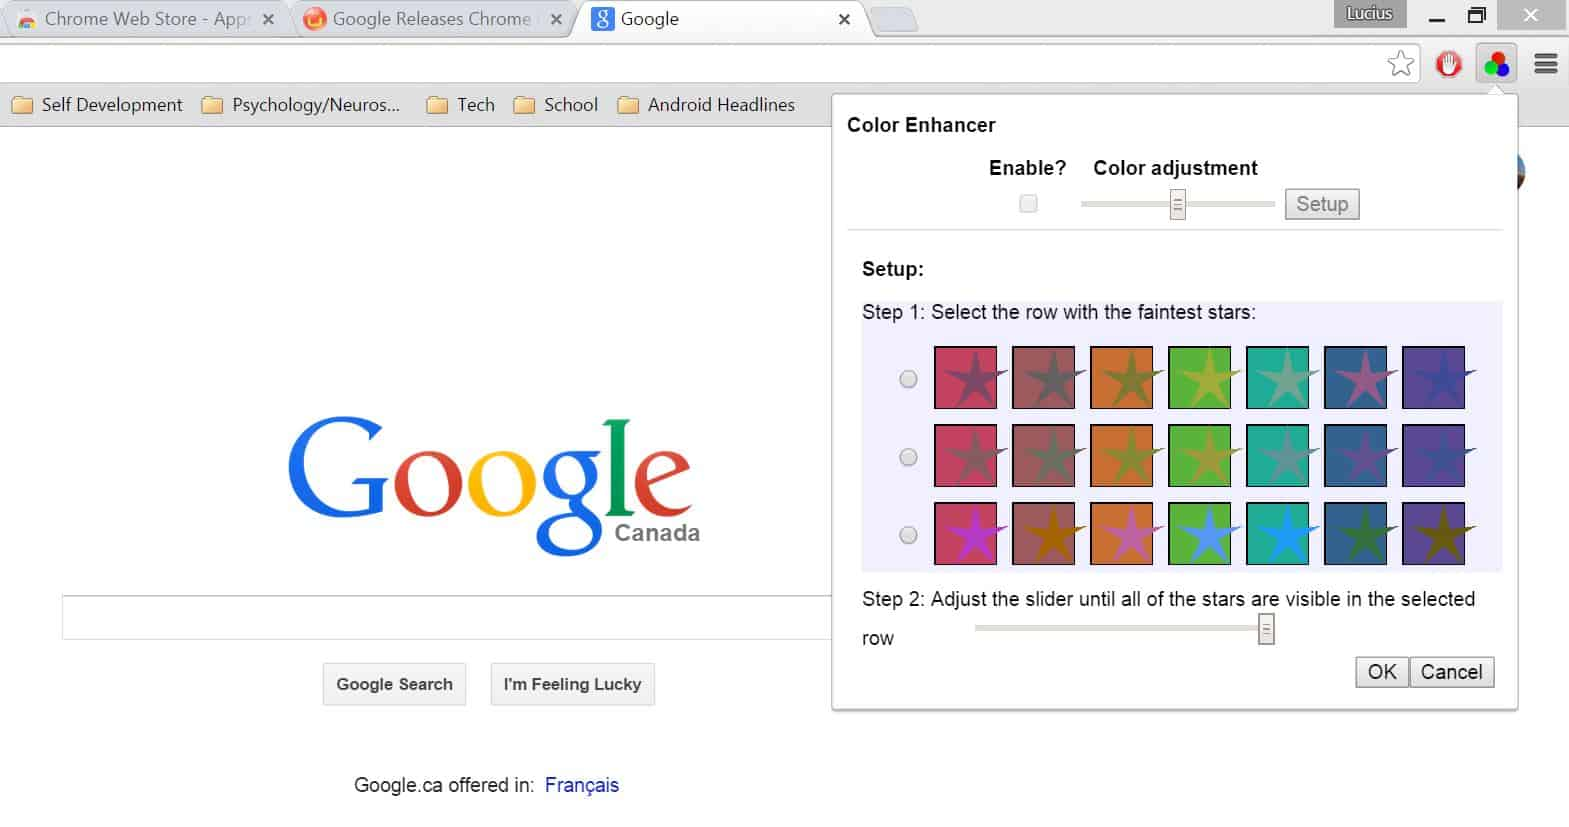 Google Color Enhancer